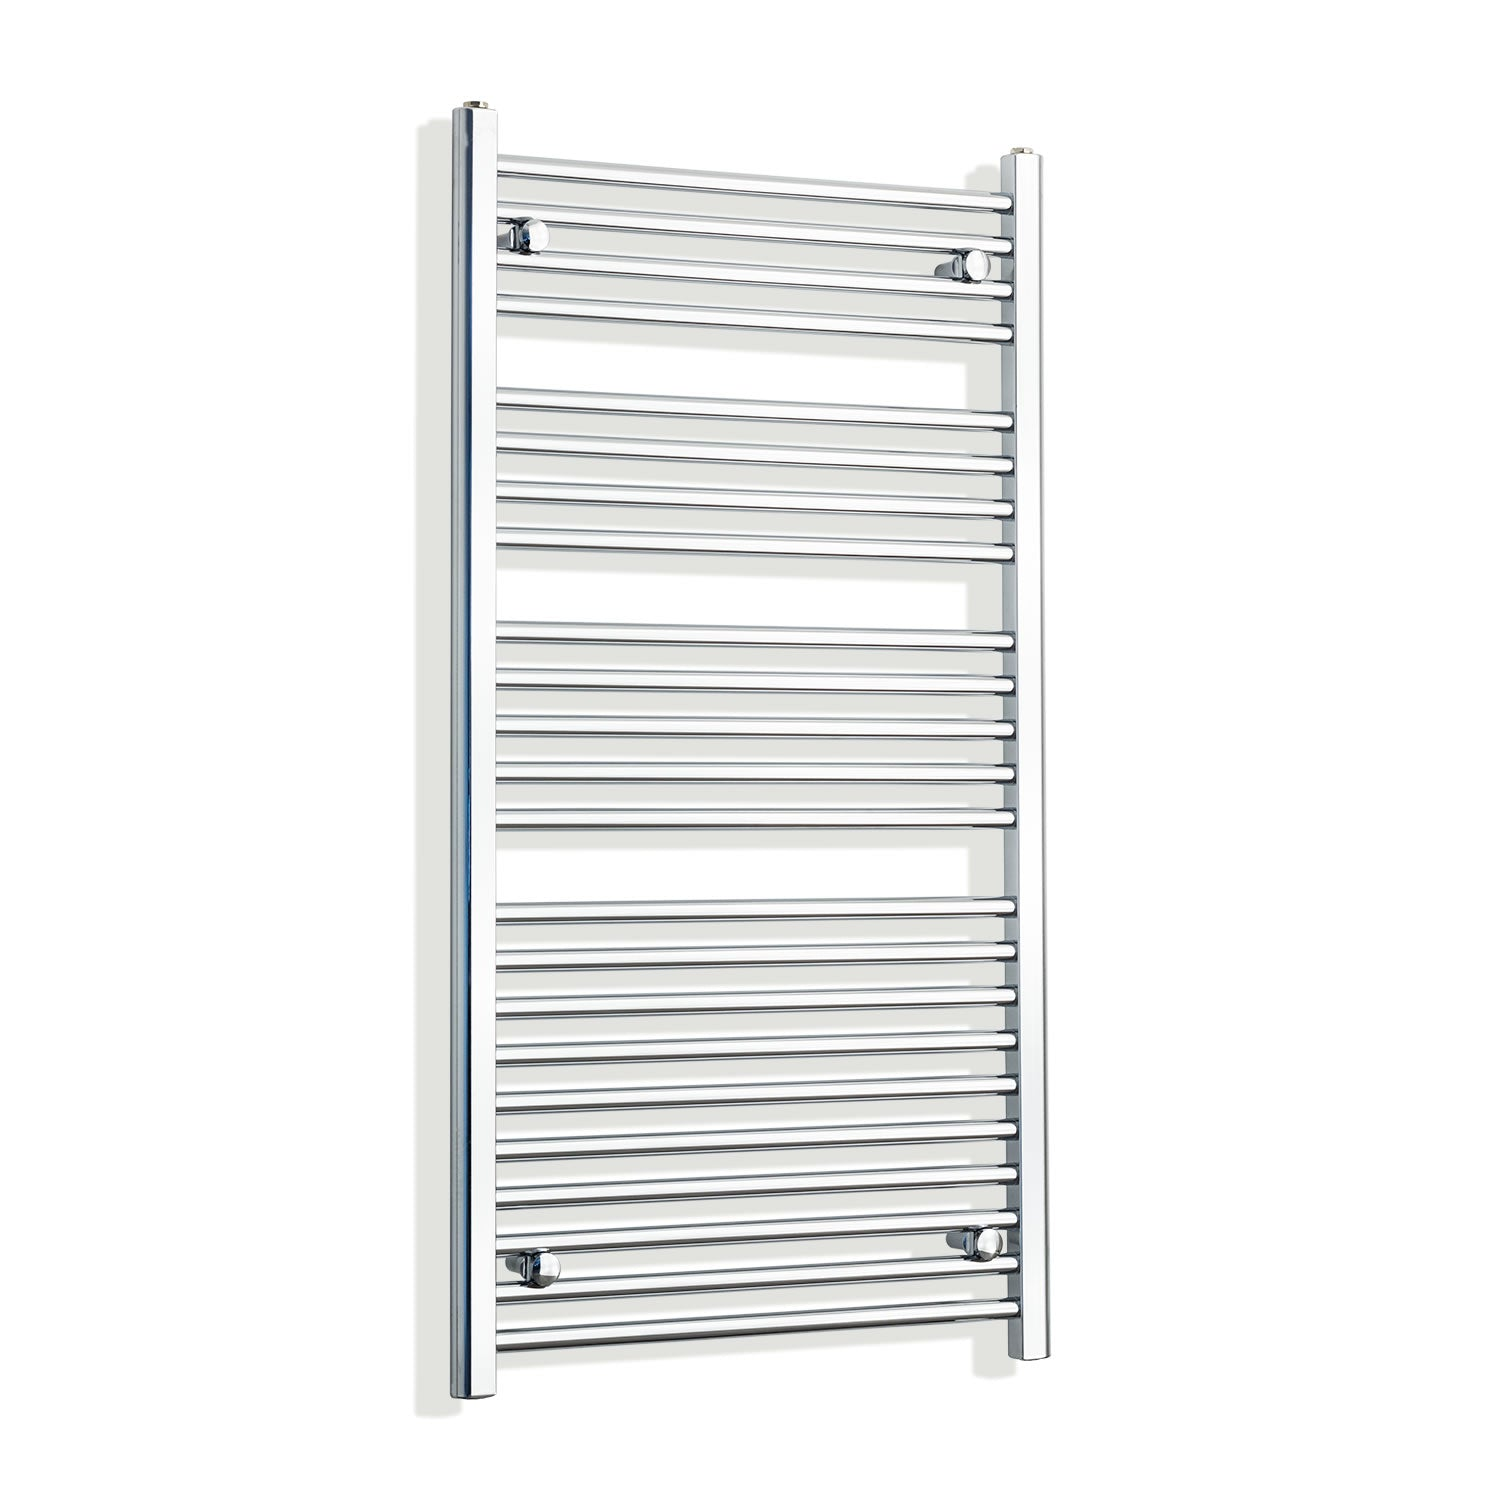 700mm Wide 1200mm High Chrome Towel Rail Radiator